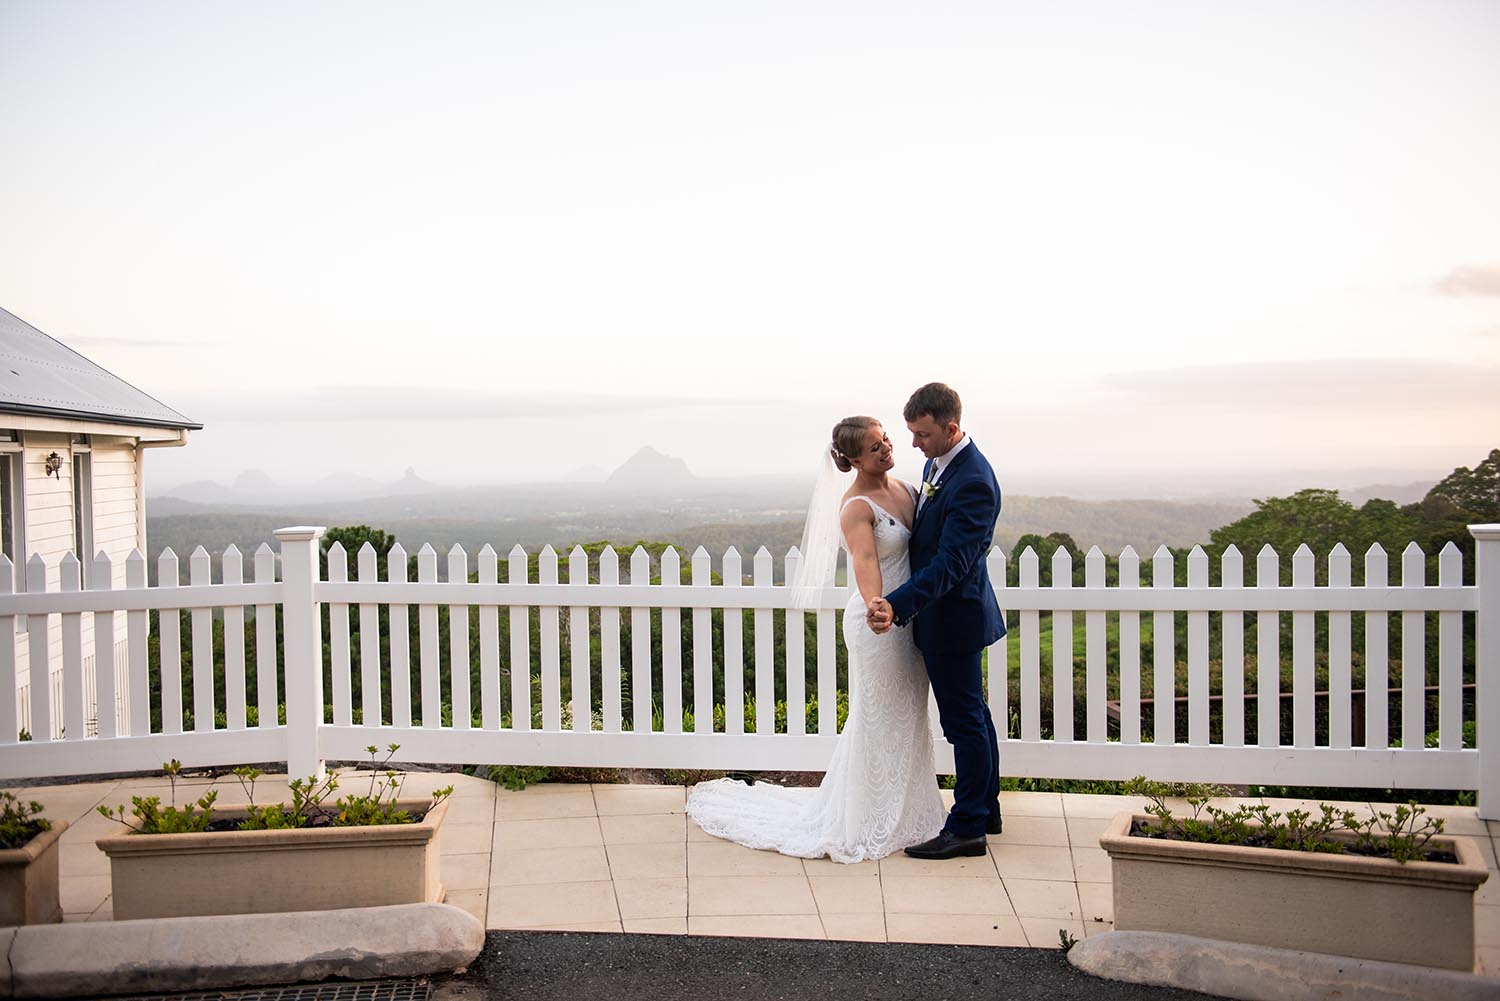 Wedding Photography - Couple with misty mountain view